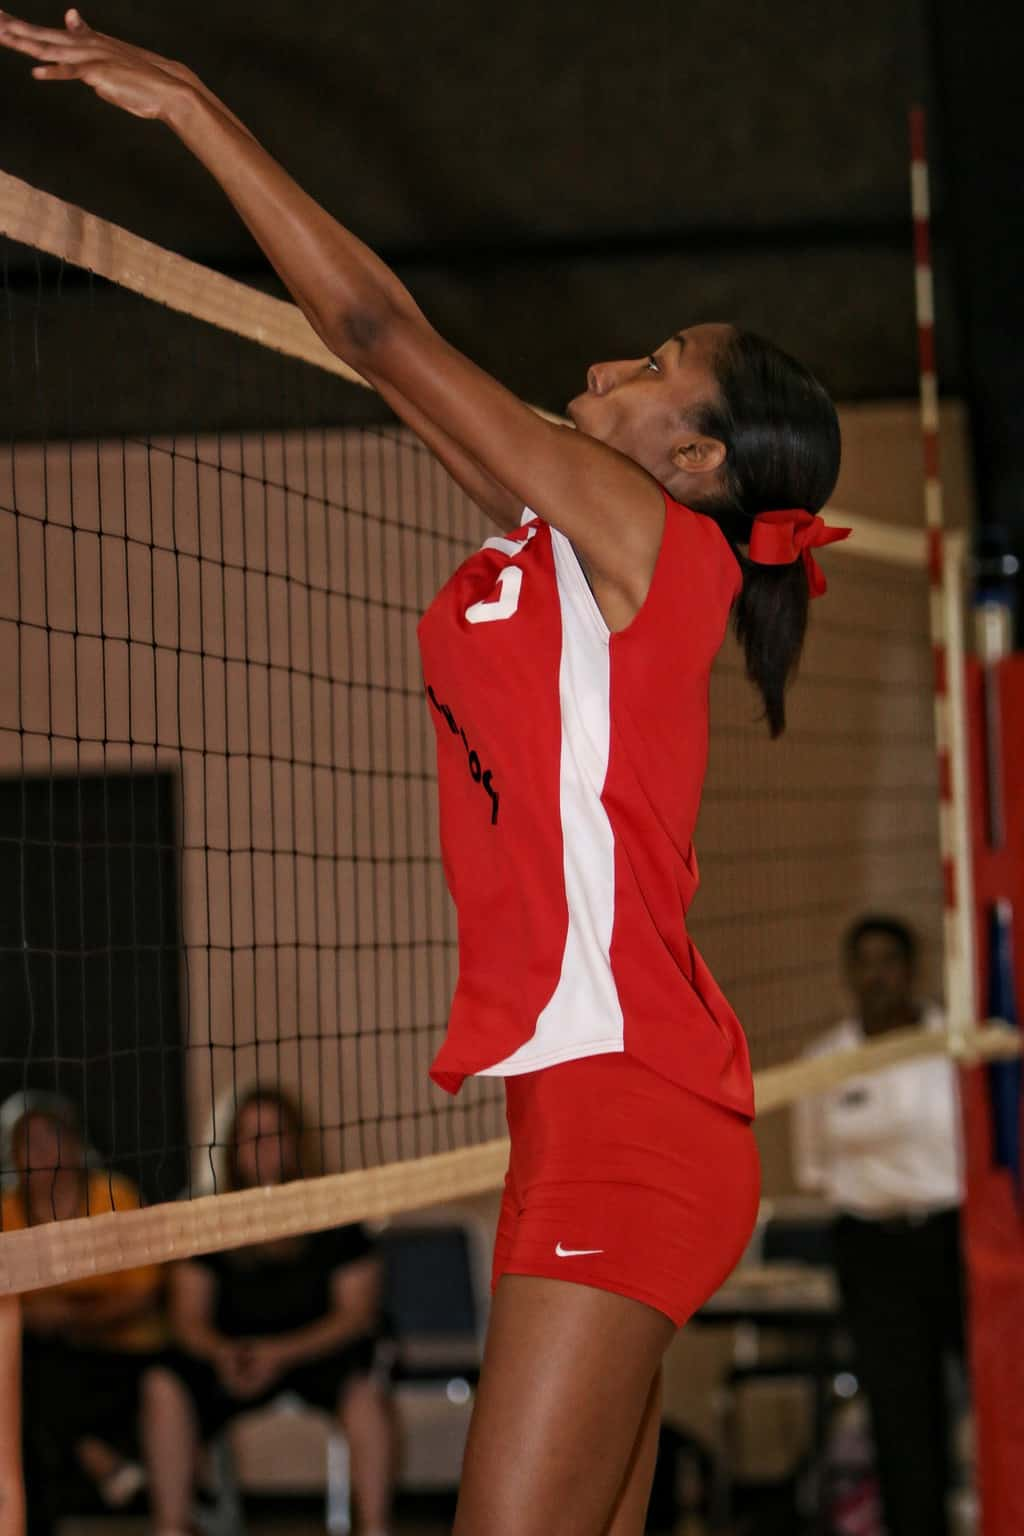 Volleyball player blocking at the net